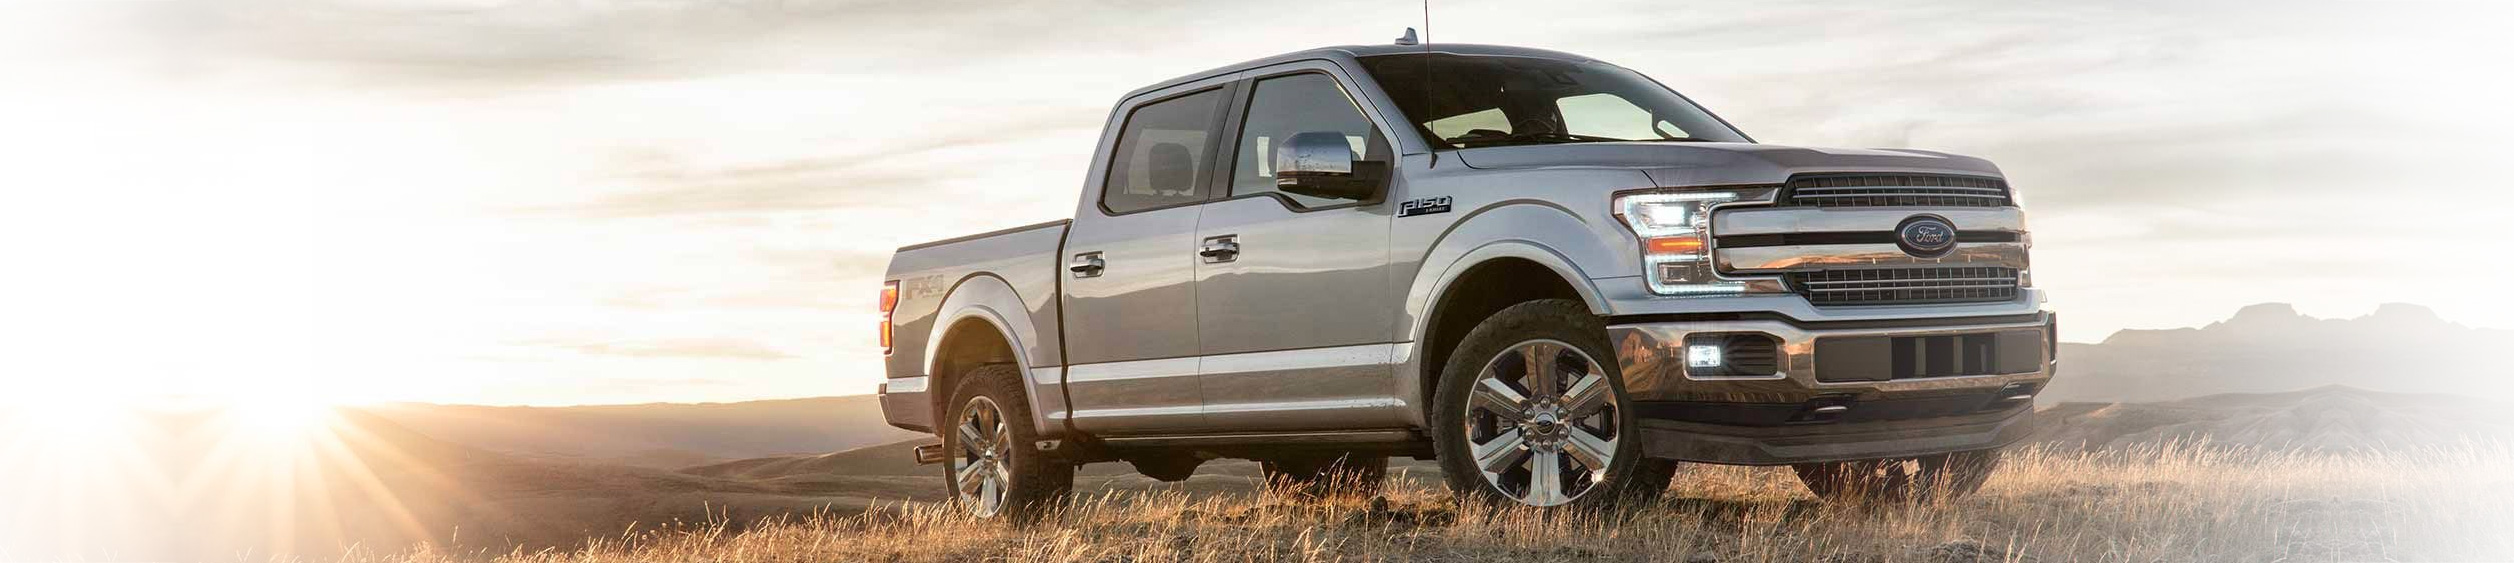 The Smart and Powerful Ford Truck